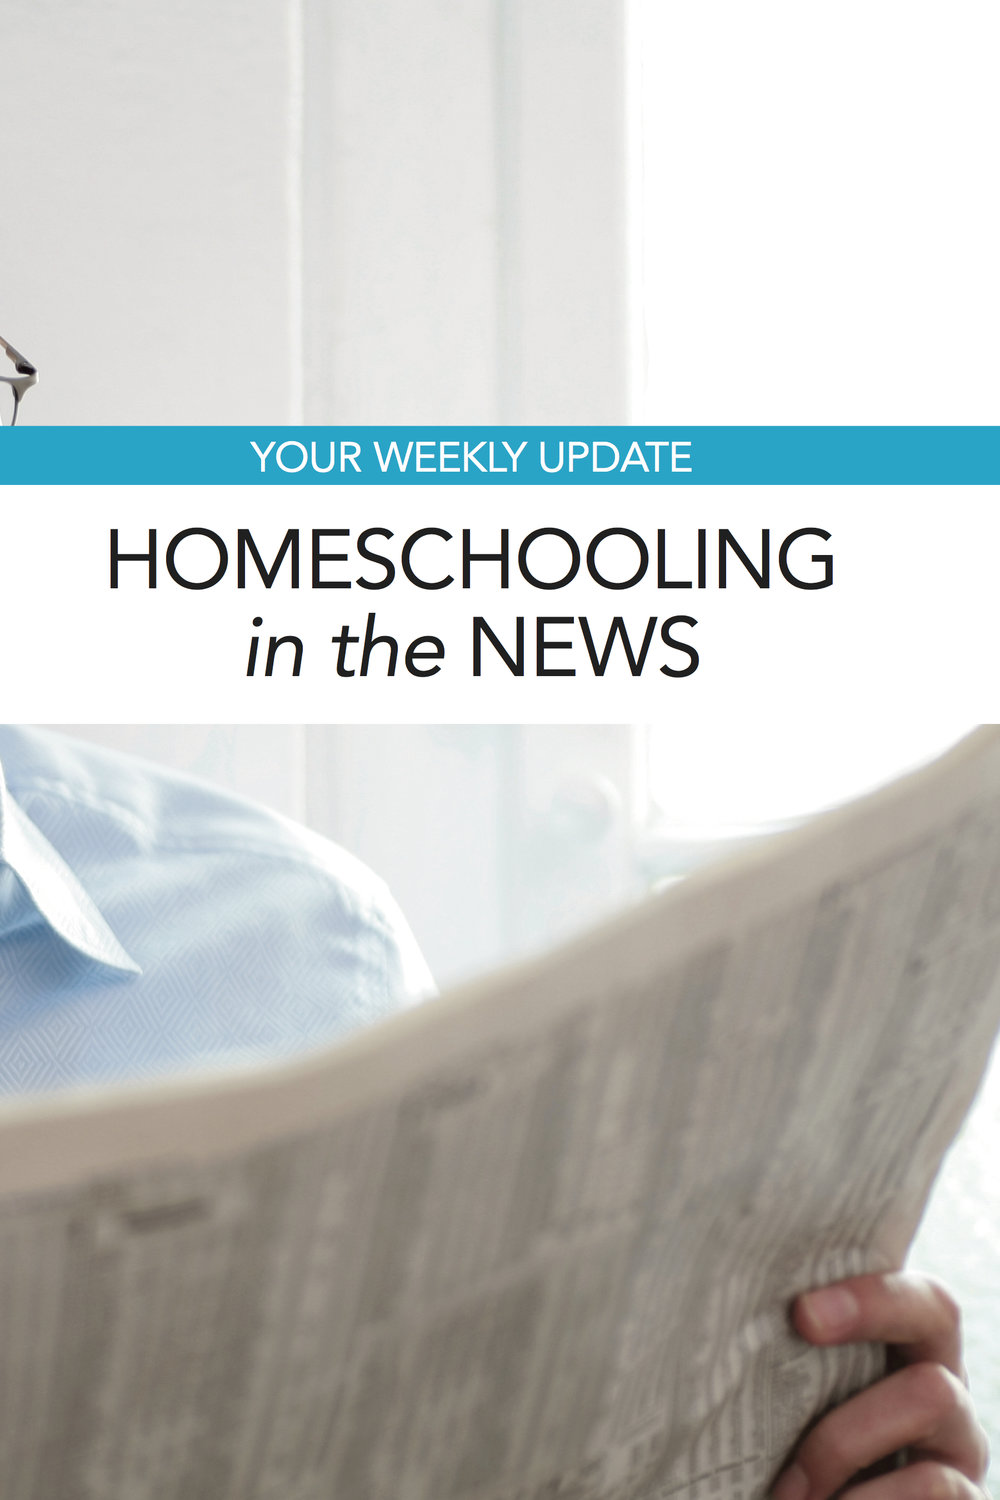 Our weekly roundup of homeschool news you need to know